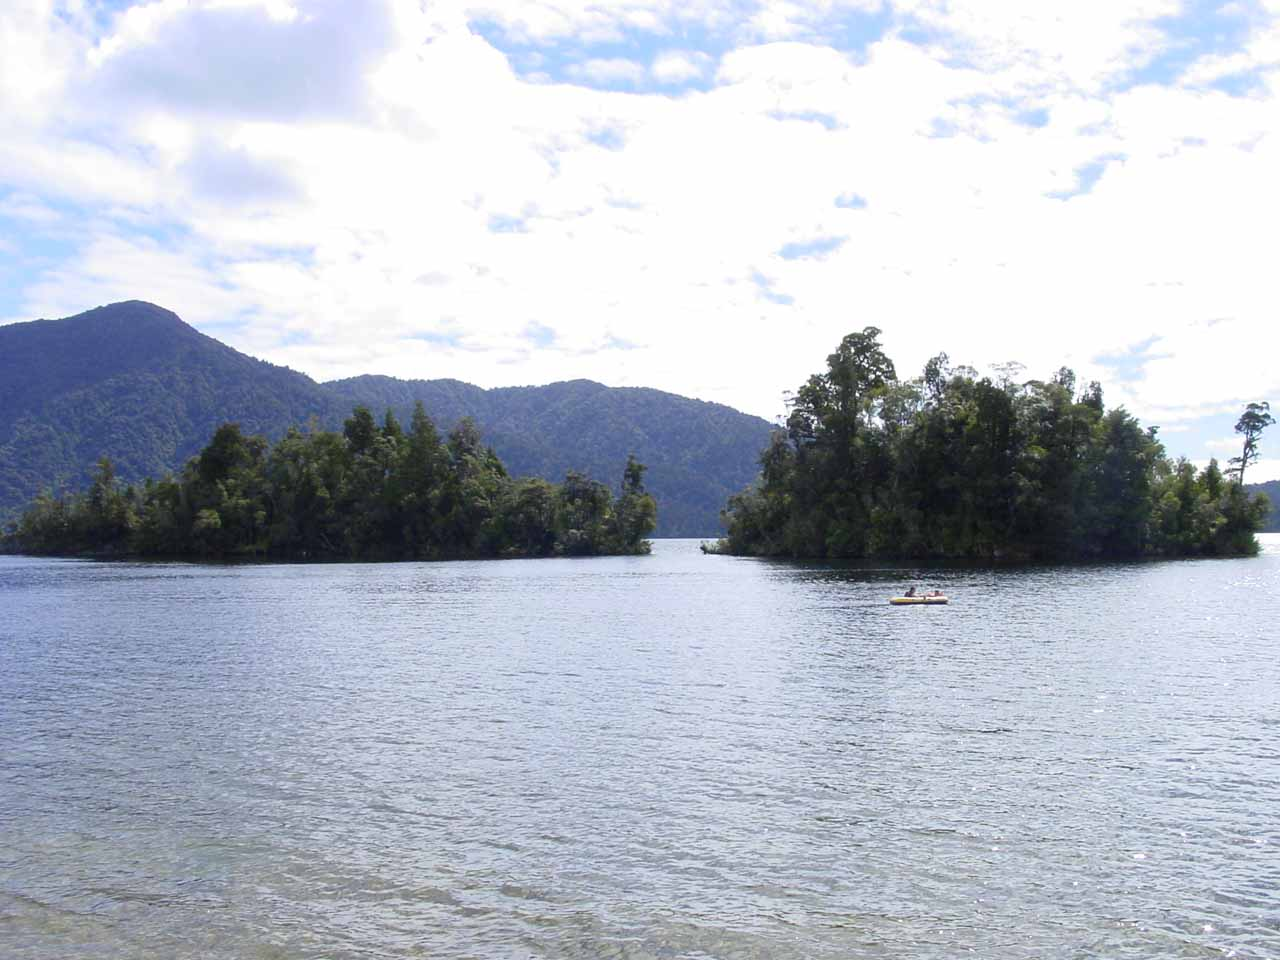 This was the view looking towards the attractive Lake Kaniere late on a partially sunny afternoon as we were making our way to Dorothy Falls